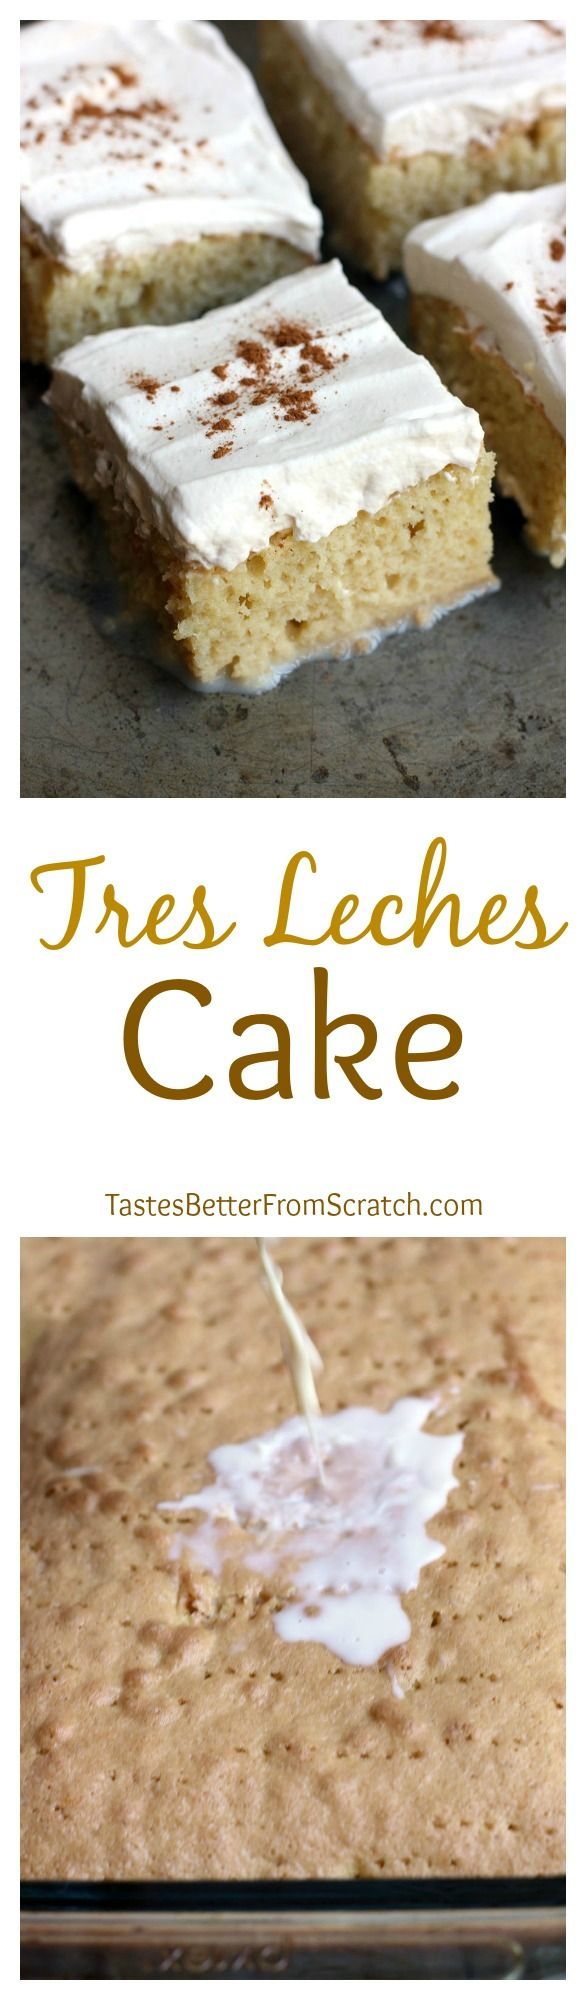 Our absolute favorite Tres Leches cake is so easy to make! On MyRecipeMagic.com